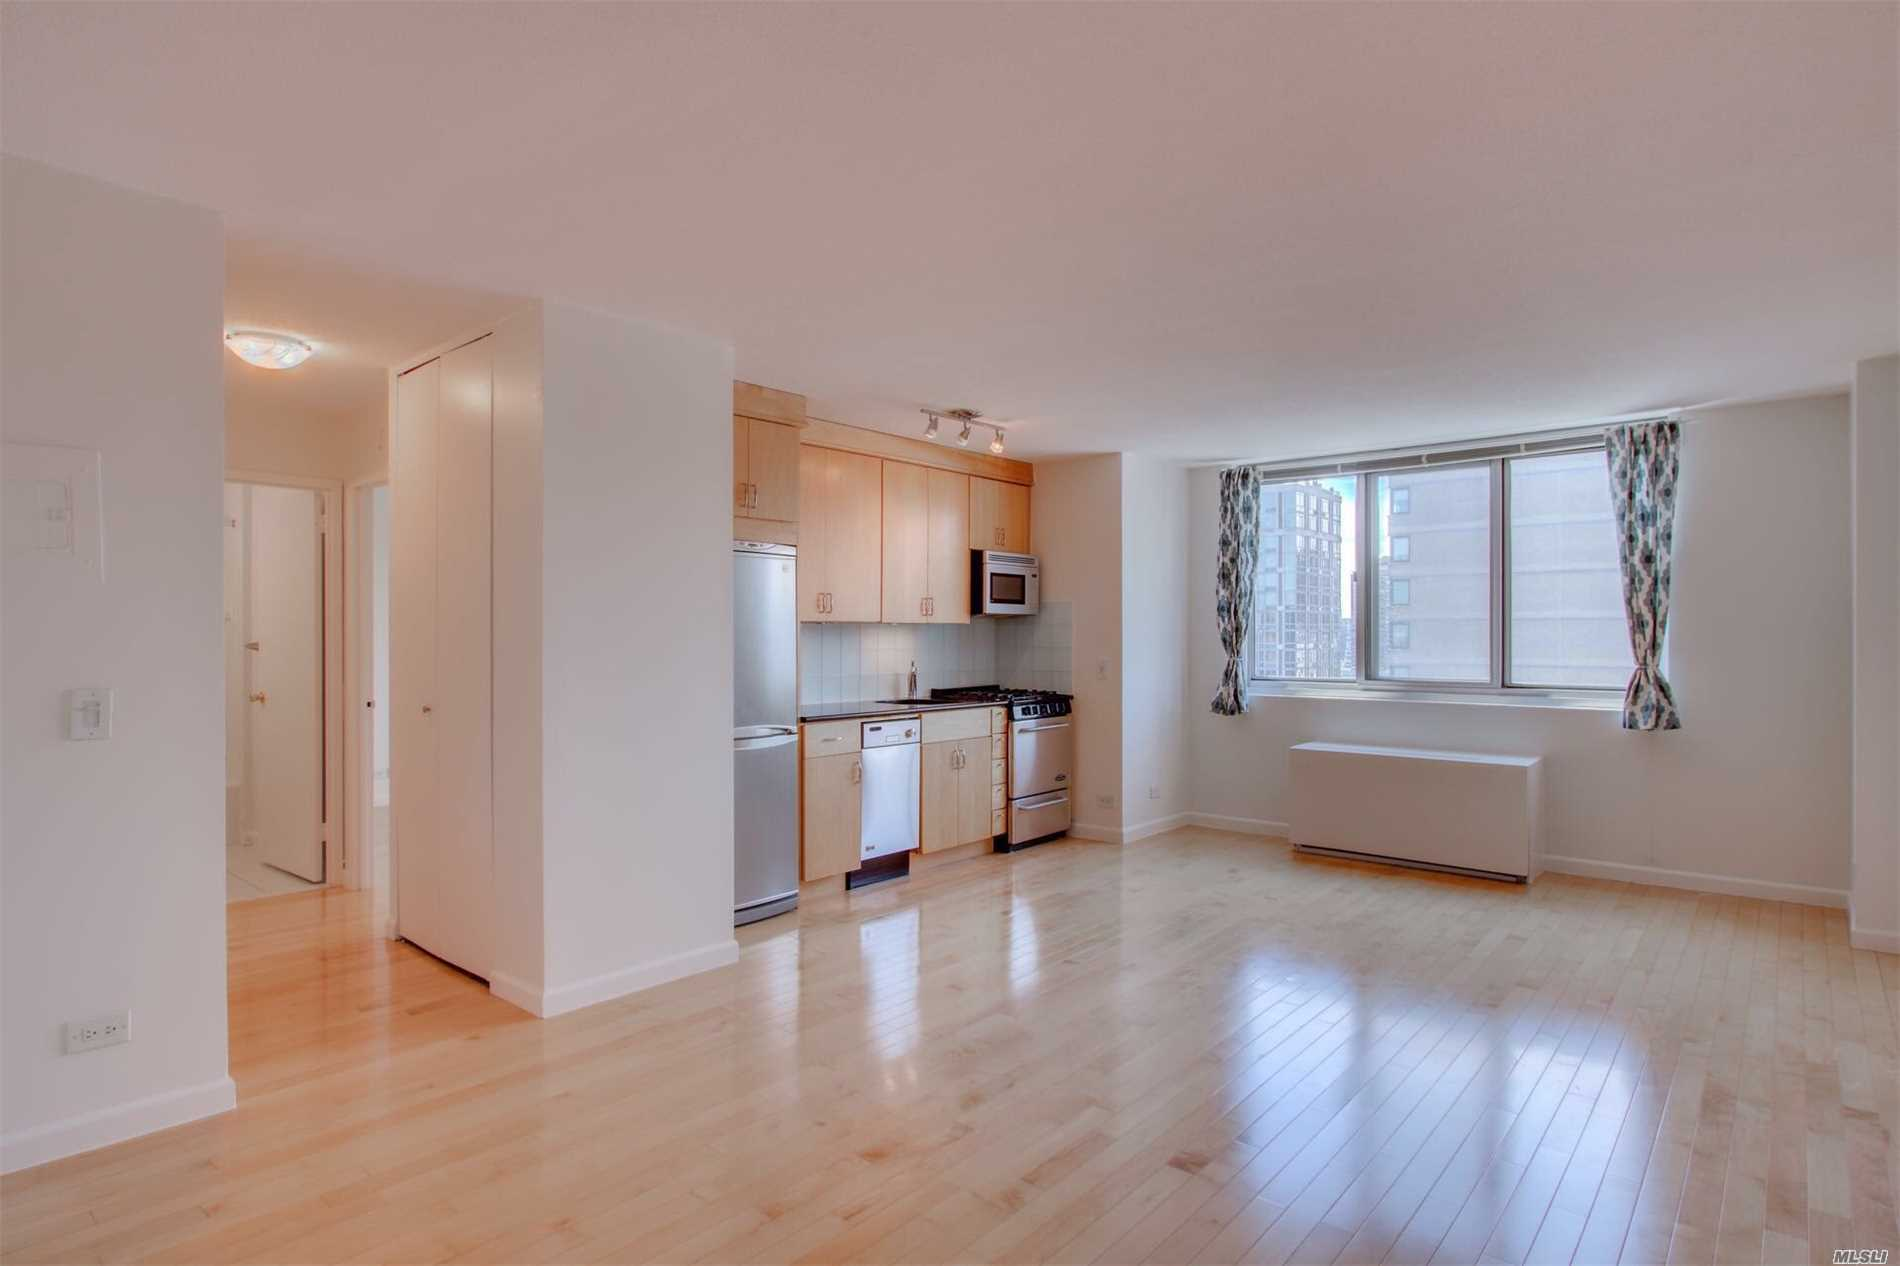 High-floor, south-facing and sun-drenched, this newly refreshed one bedroom unit delivers a wonderfully updated kitchen w/ hardwood floors and closets throughout. Incredible panoramic views to Midtown Manhattan, day or night. Full service building w/ 24-hour concierge, resident manager, parking, sun deck, and more. Sorry, no pets allowed in this unit.